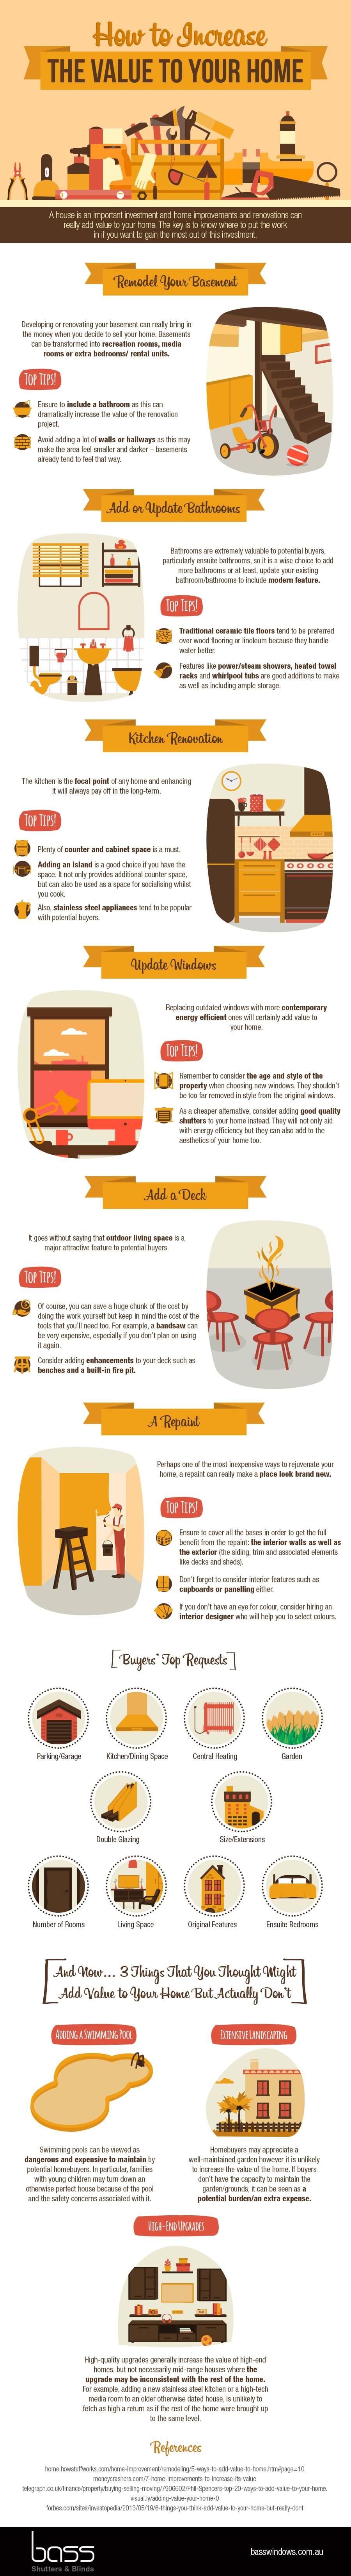 How to increase the value to your home infographic for How to increase home value